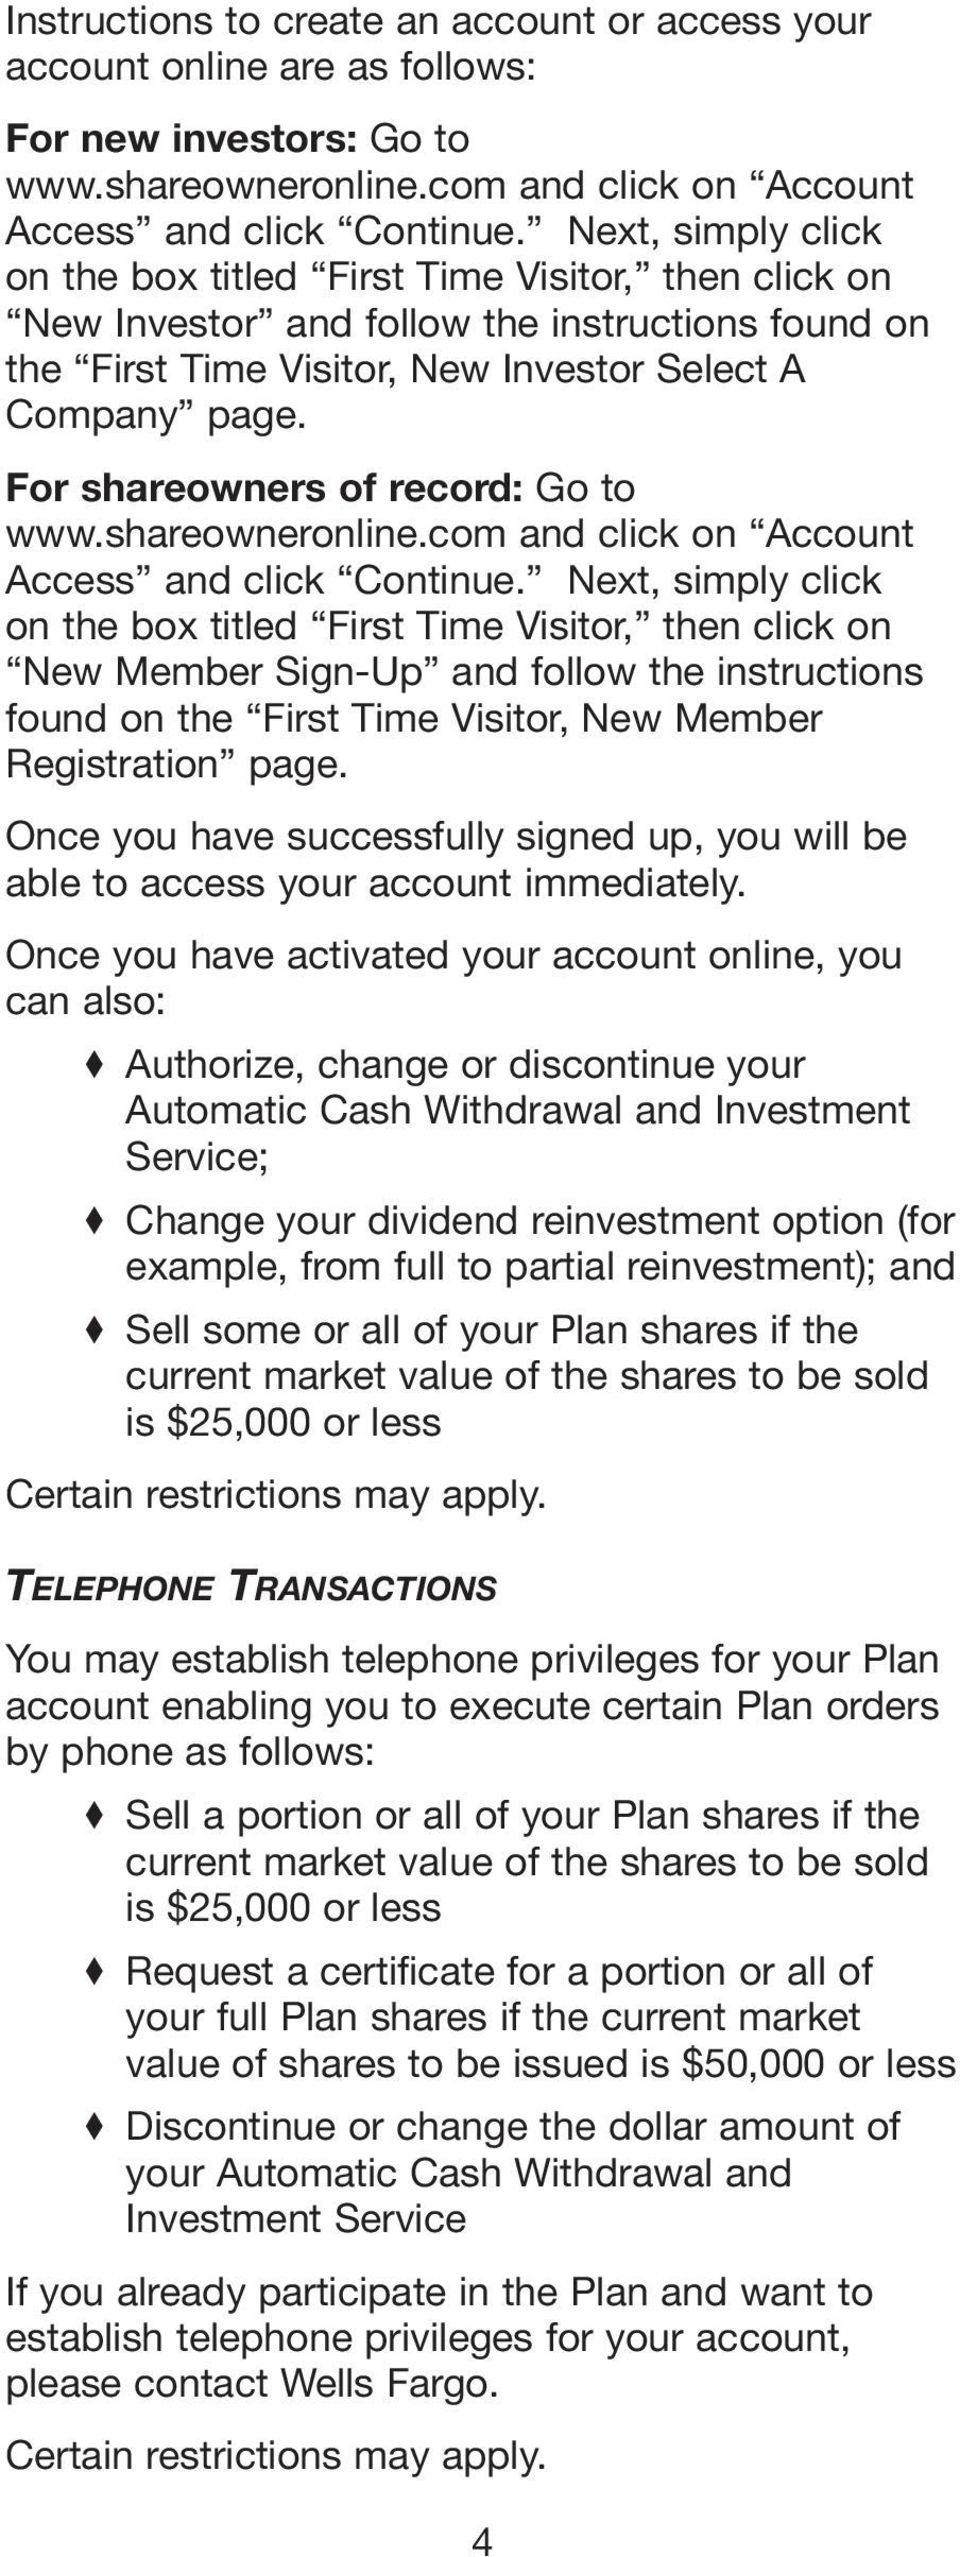 For shareowners of record: Go to www.shareowneronline.com and click on Account Access and click Continue.